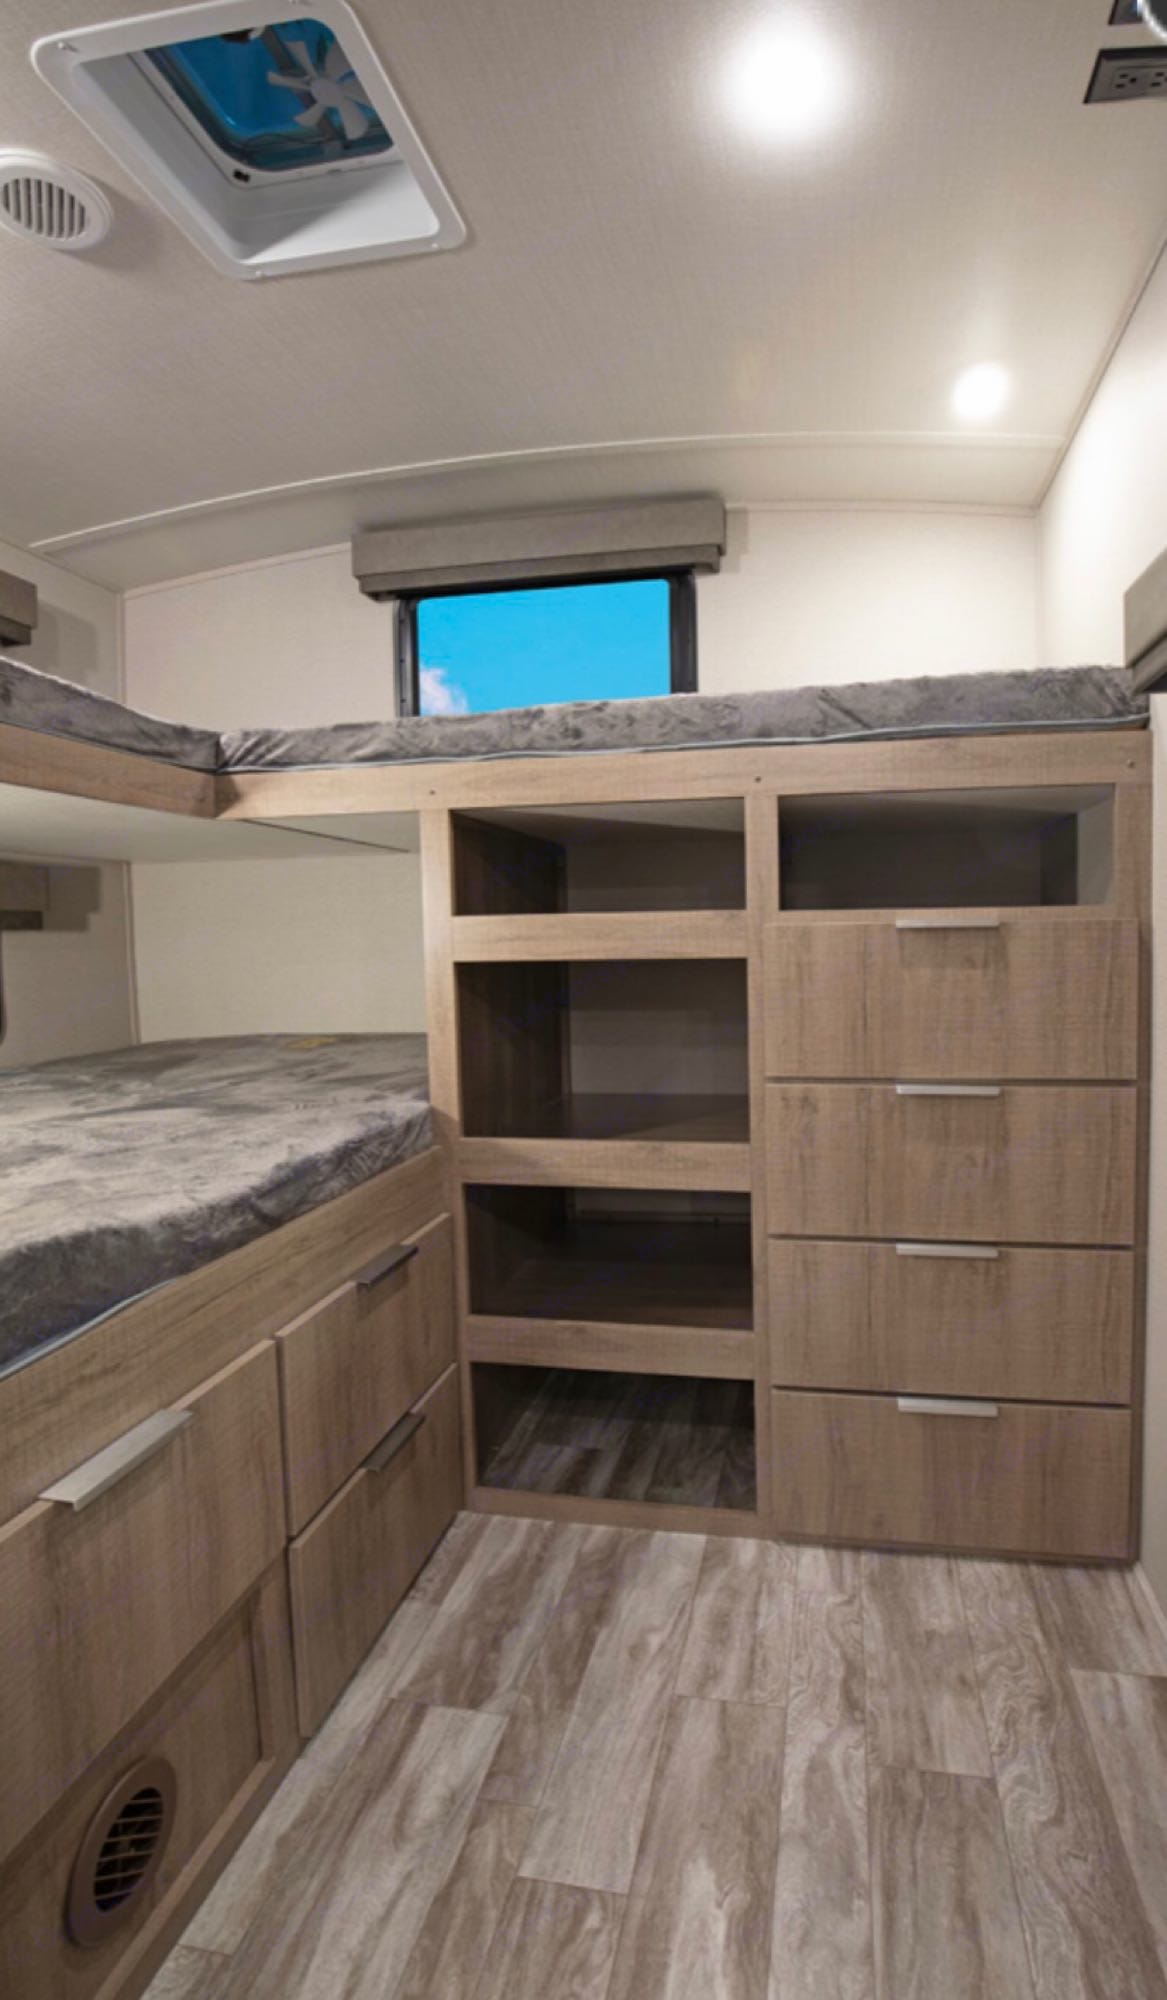 Bunk house, can sleep up to four people. Grand Design imagine 2020